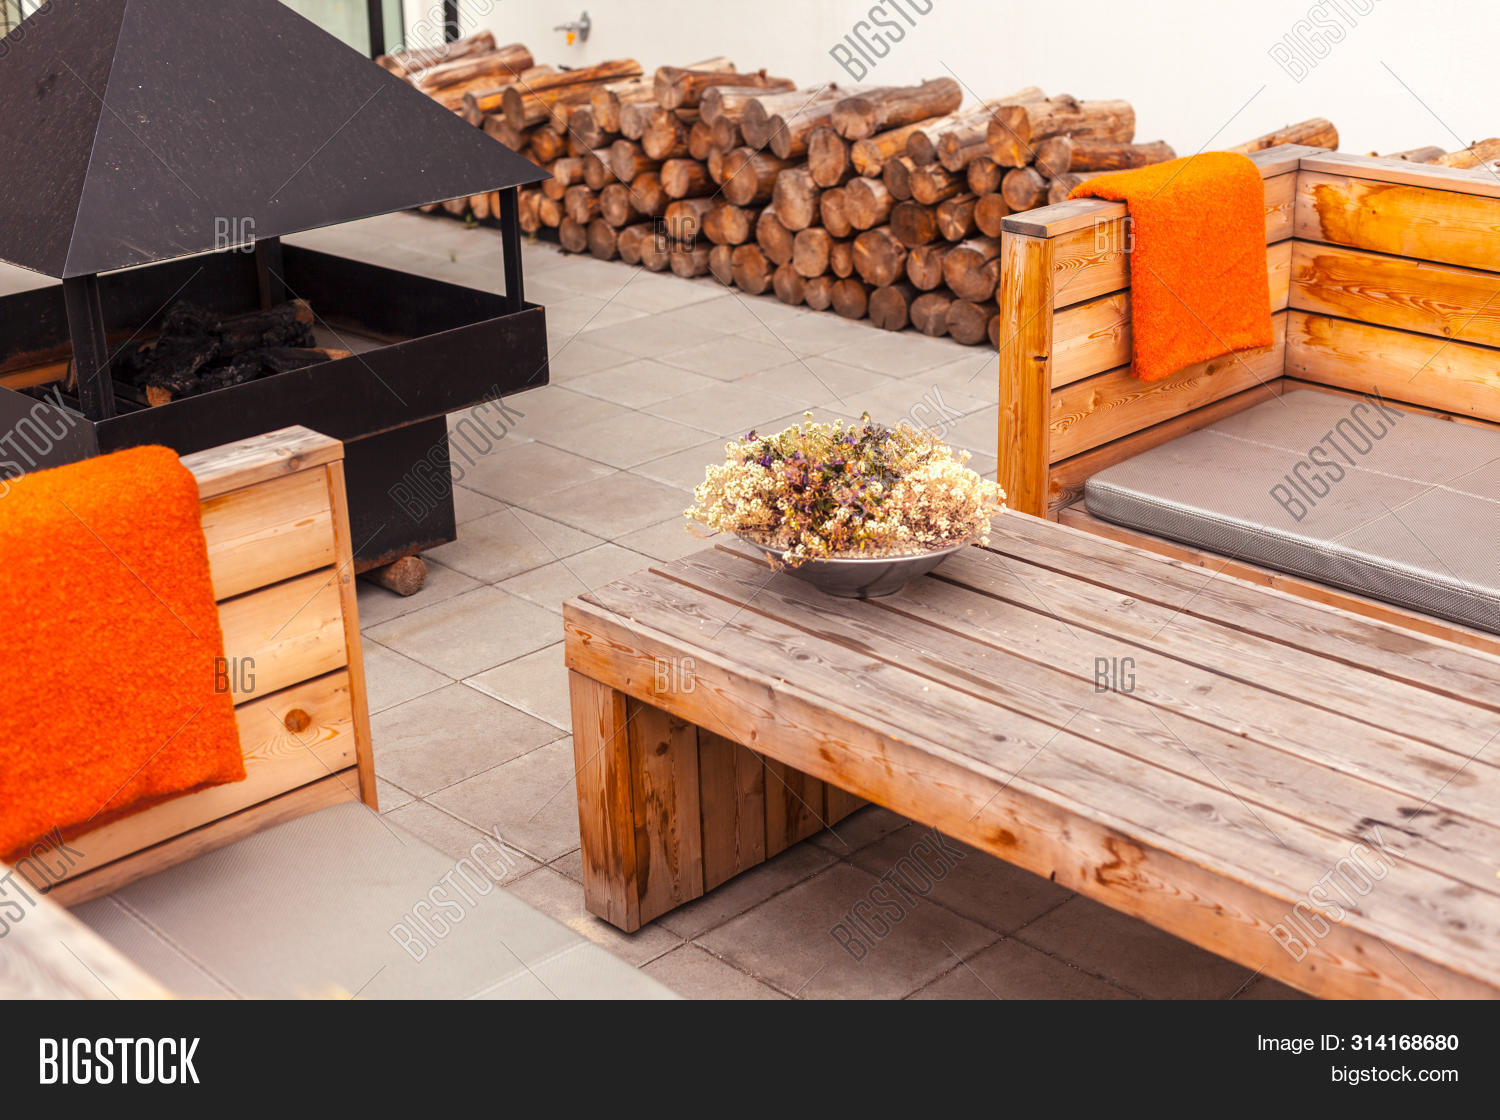 Outdoor Restaurant Image Photo Free Trial Bigstock